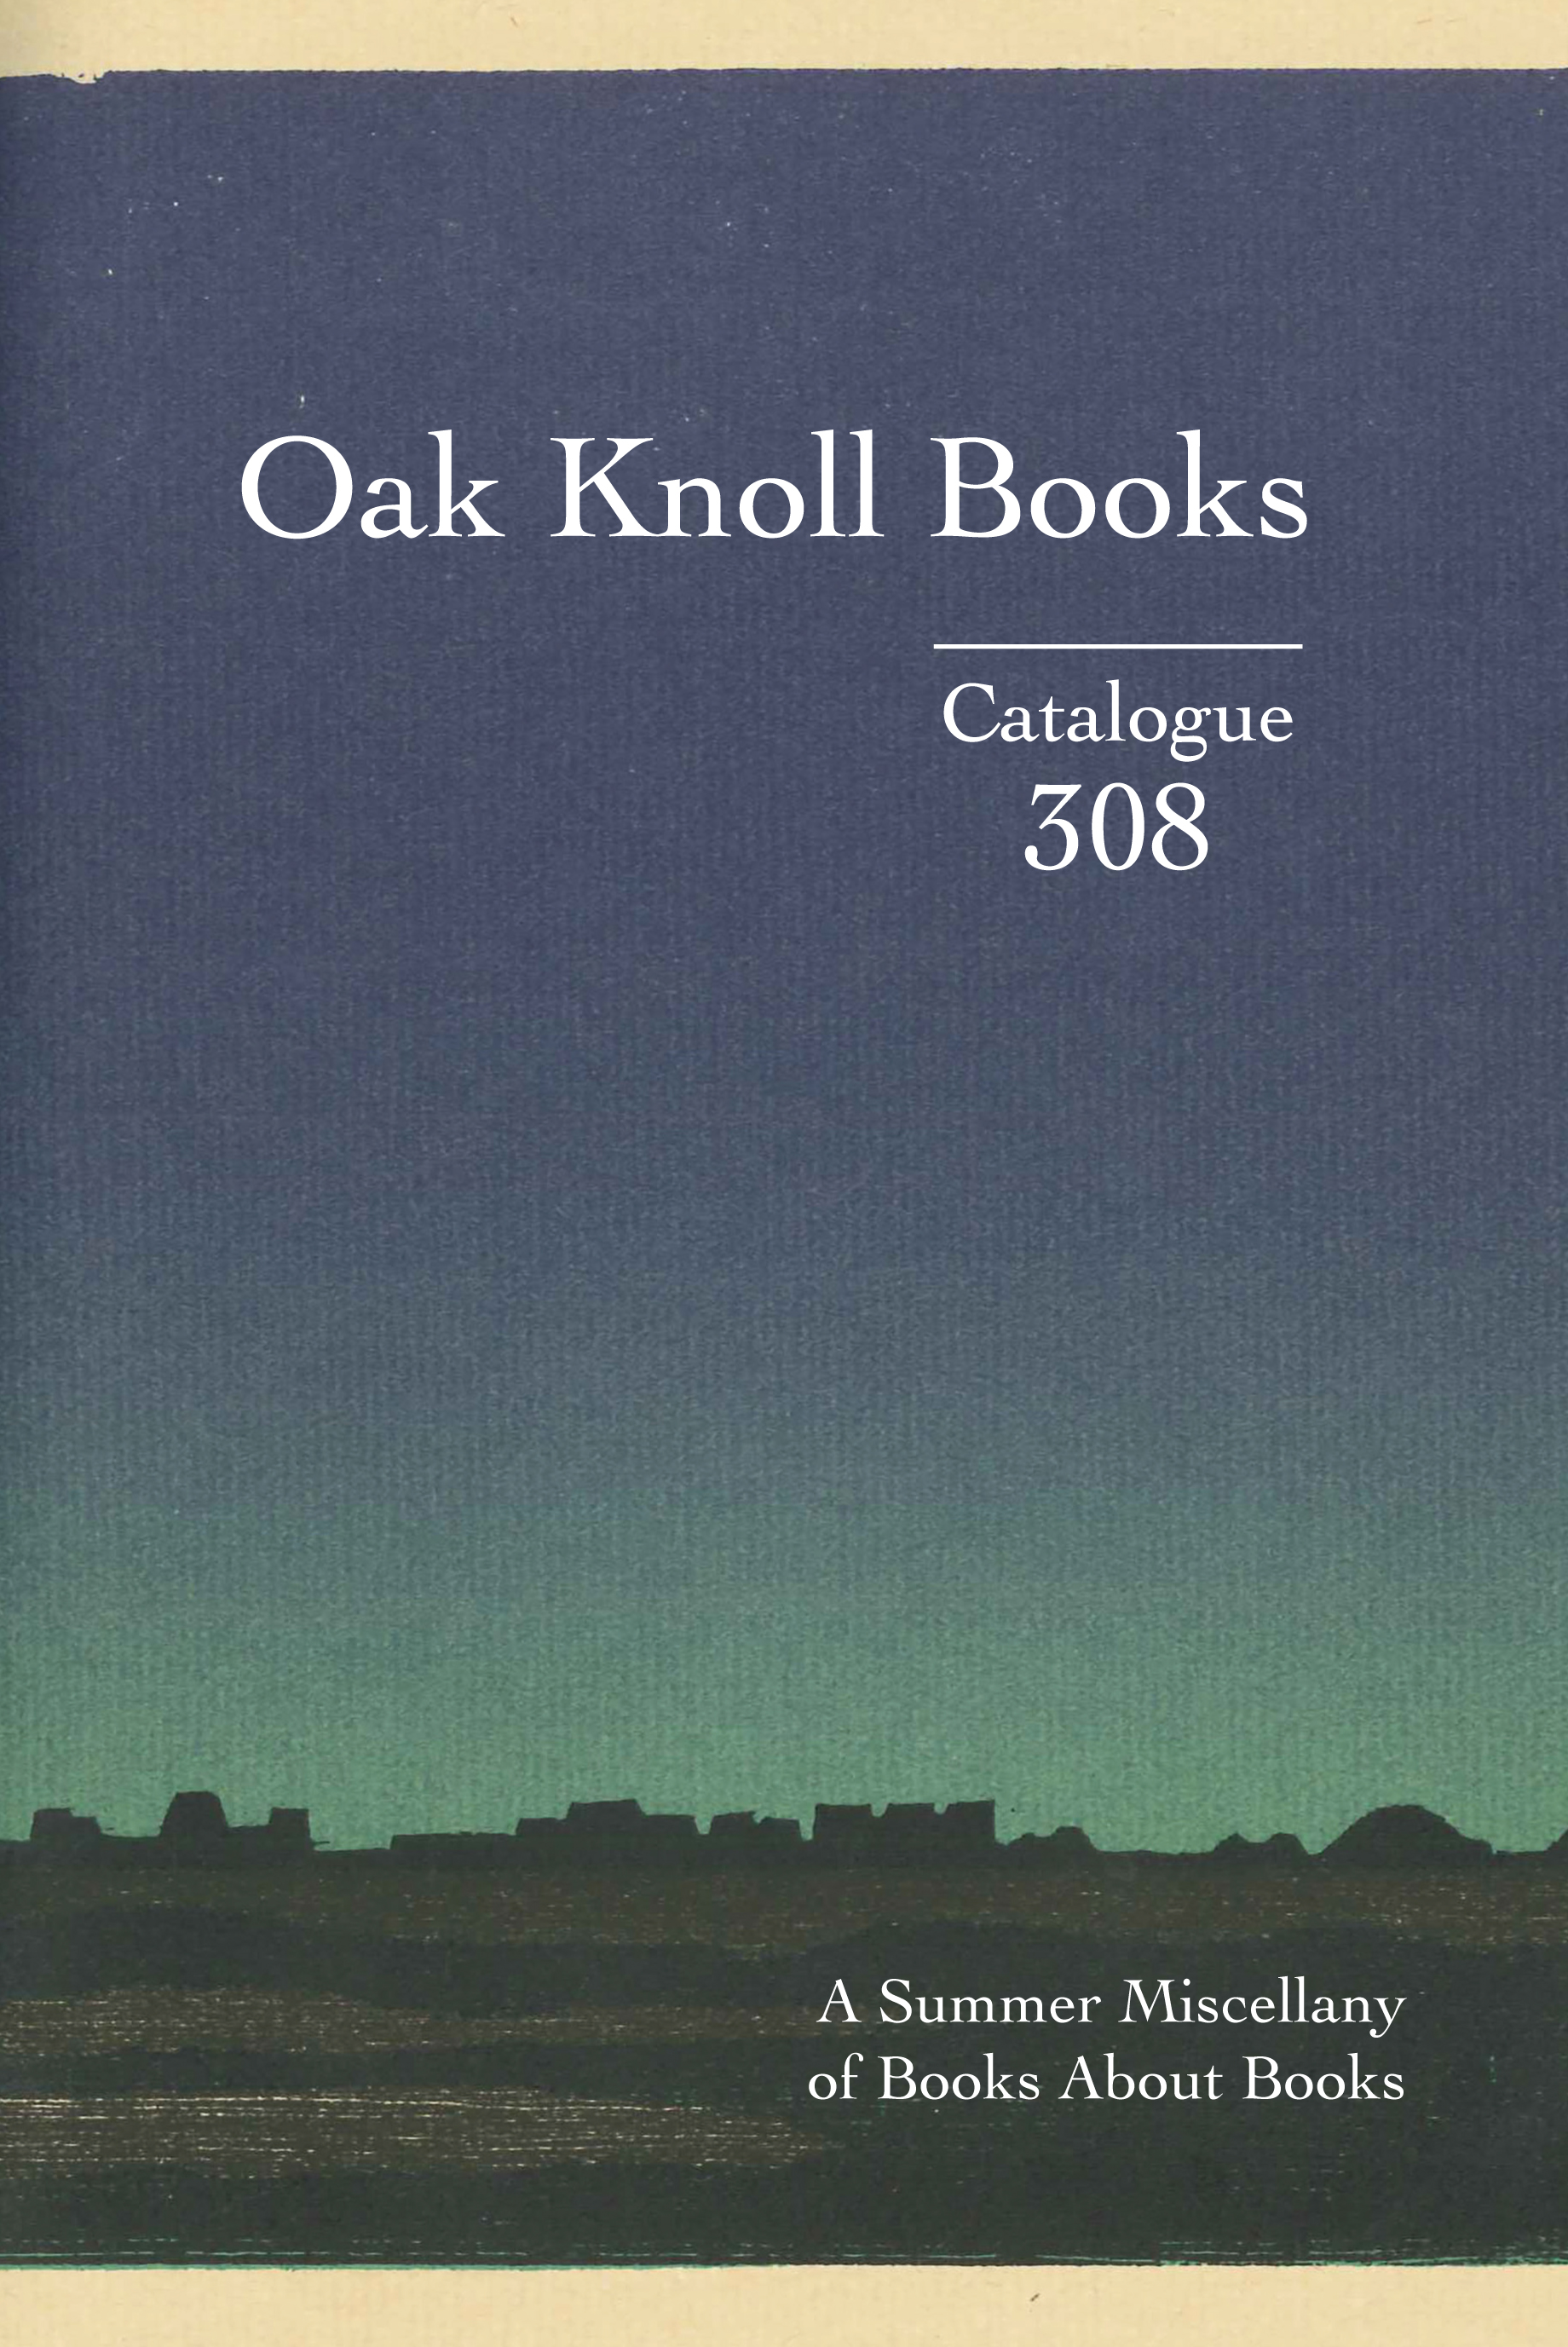 Catalogue 308